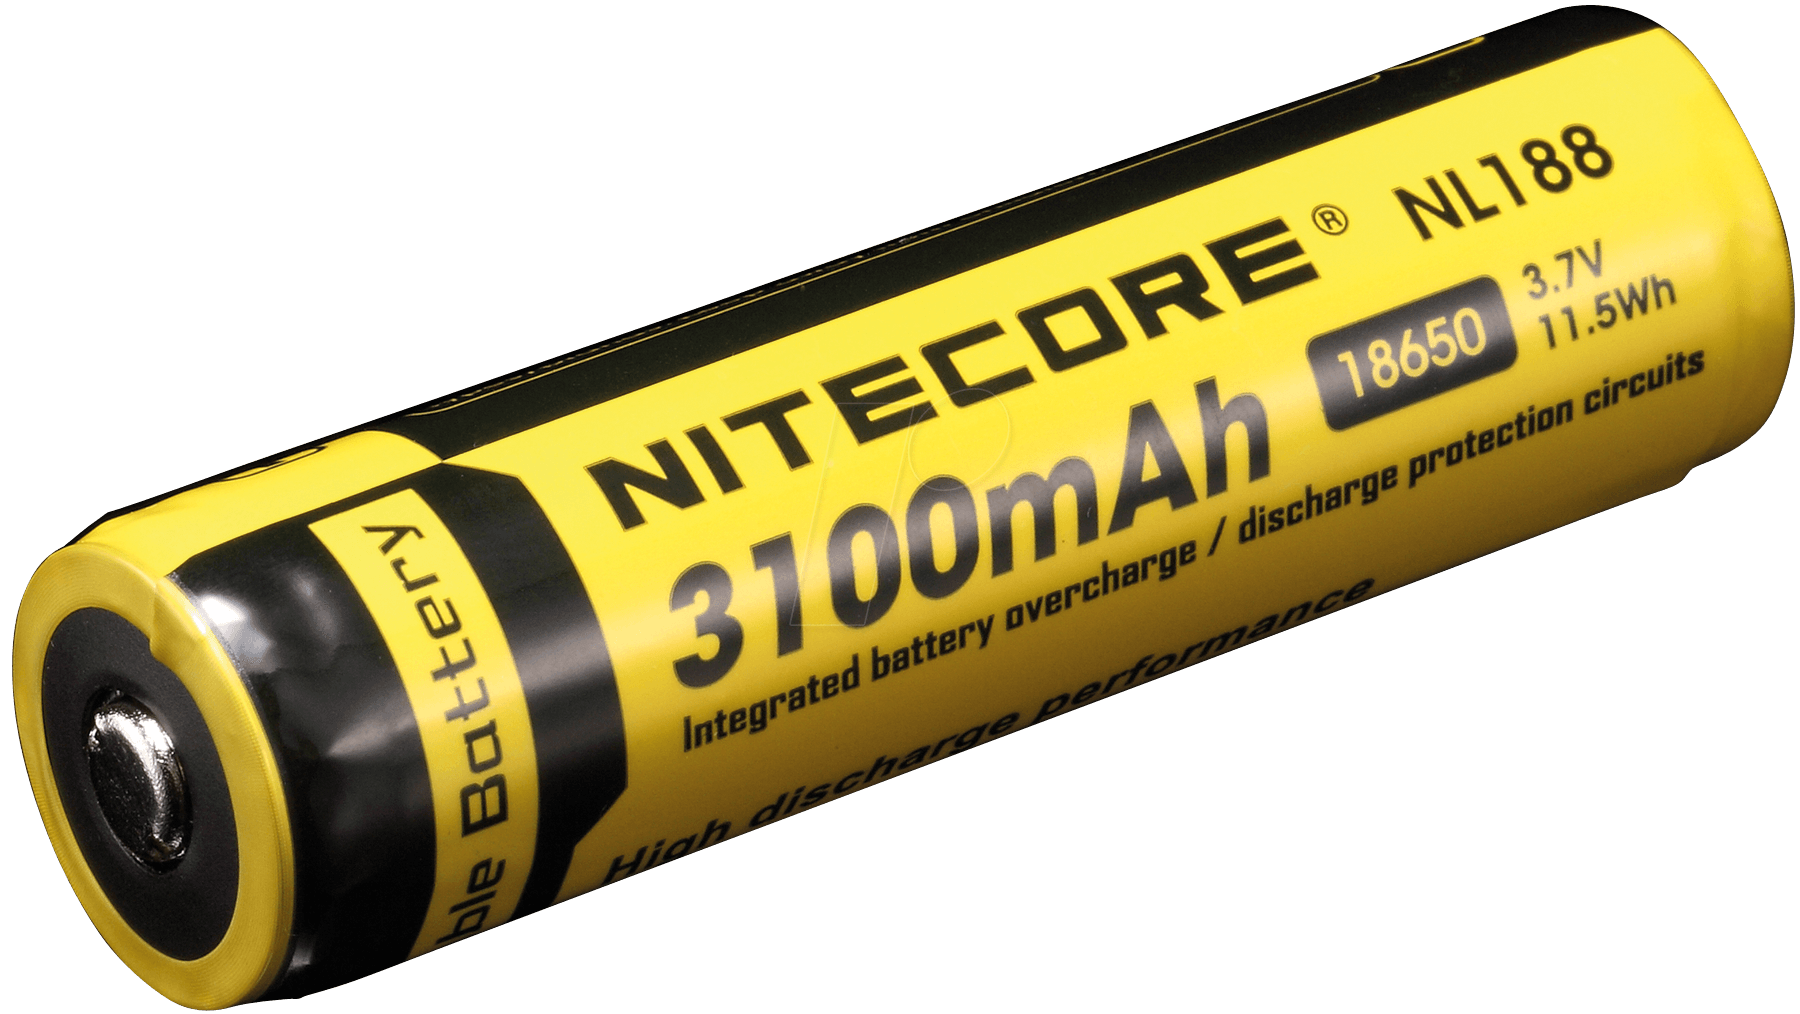 Nc Nl188 Nitecore Li Ion 18650 Cell With Pcb 3100 Mah At Reichelt Protection Circuit Images Elektronik